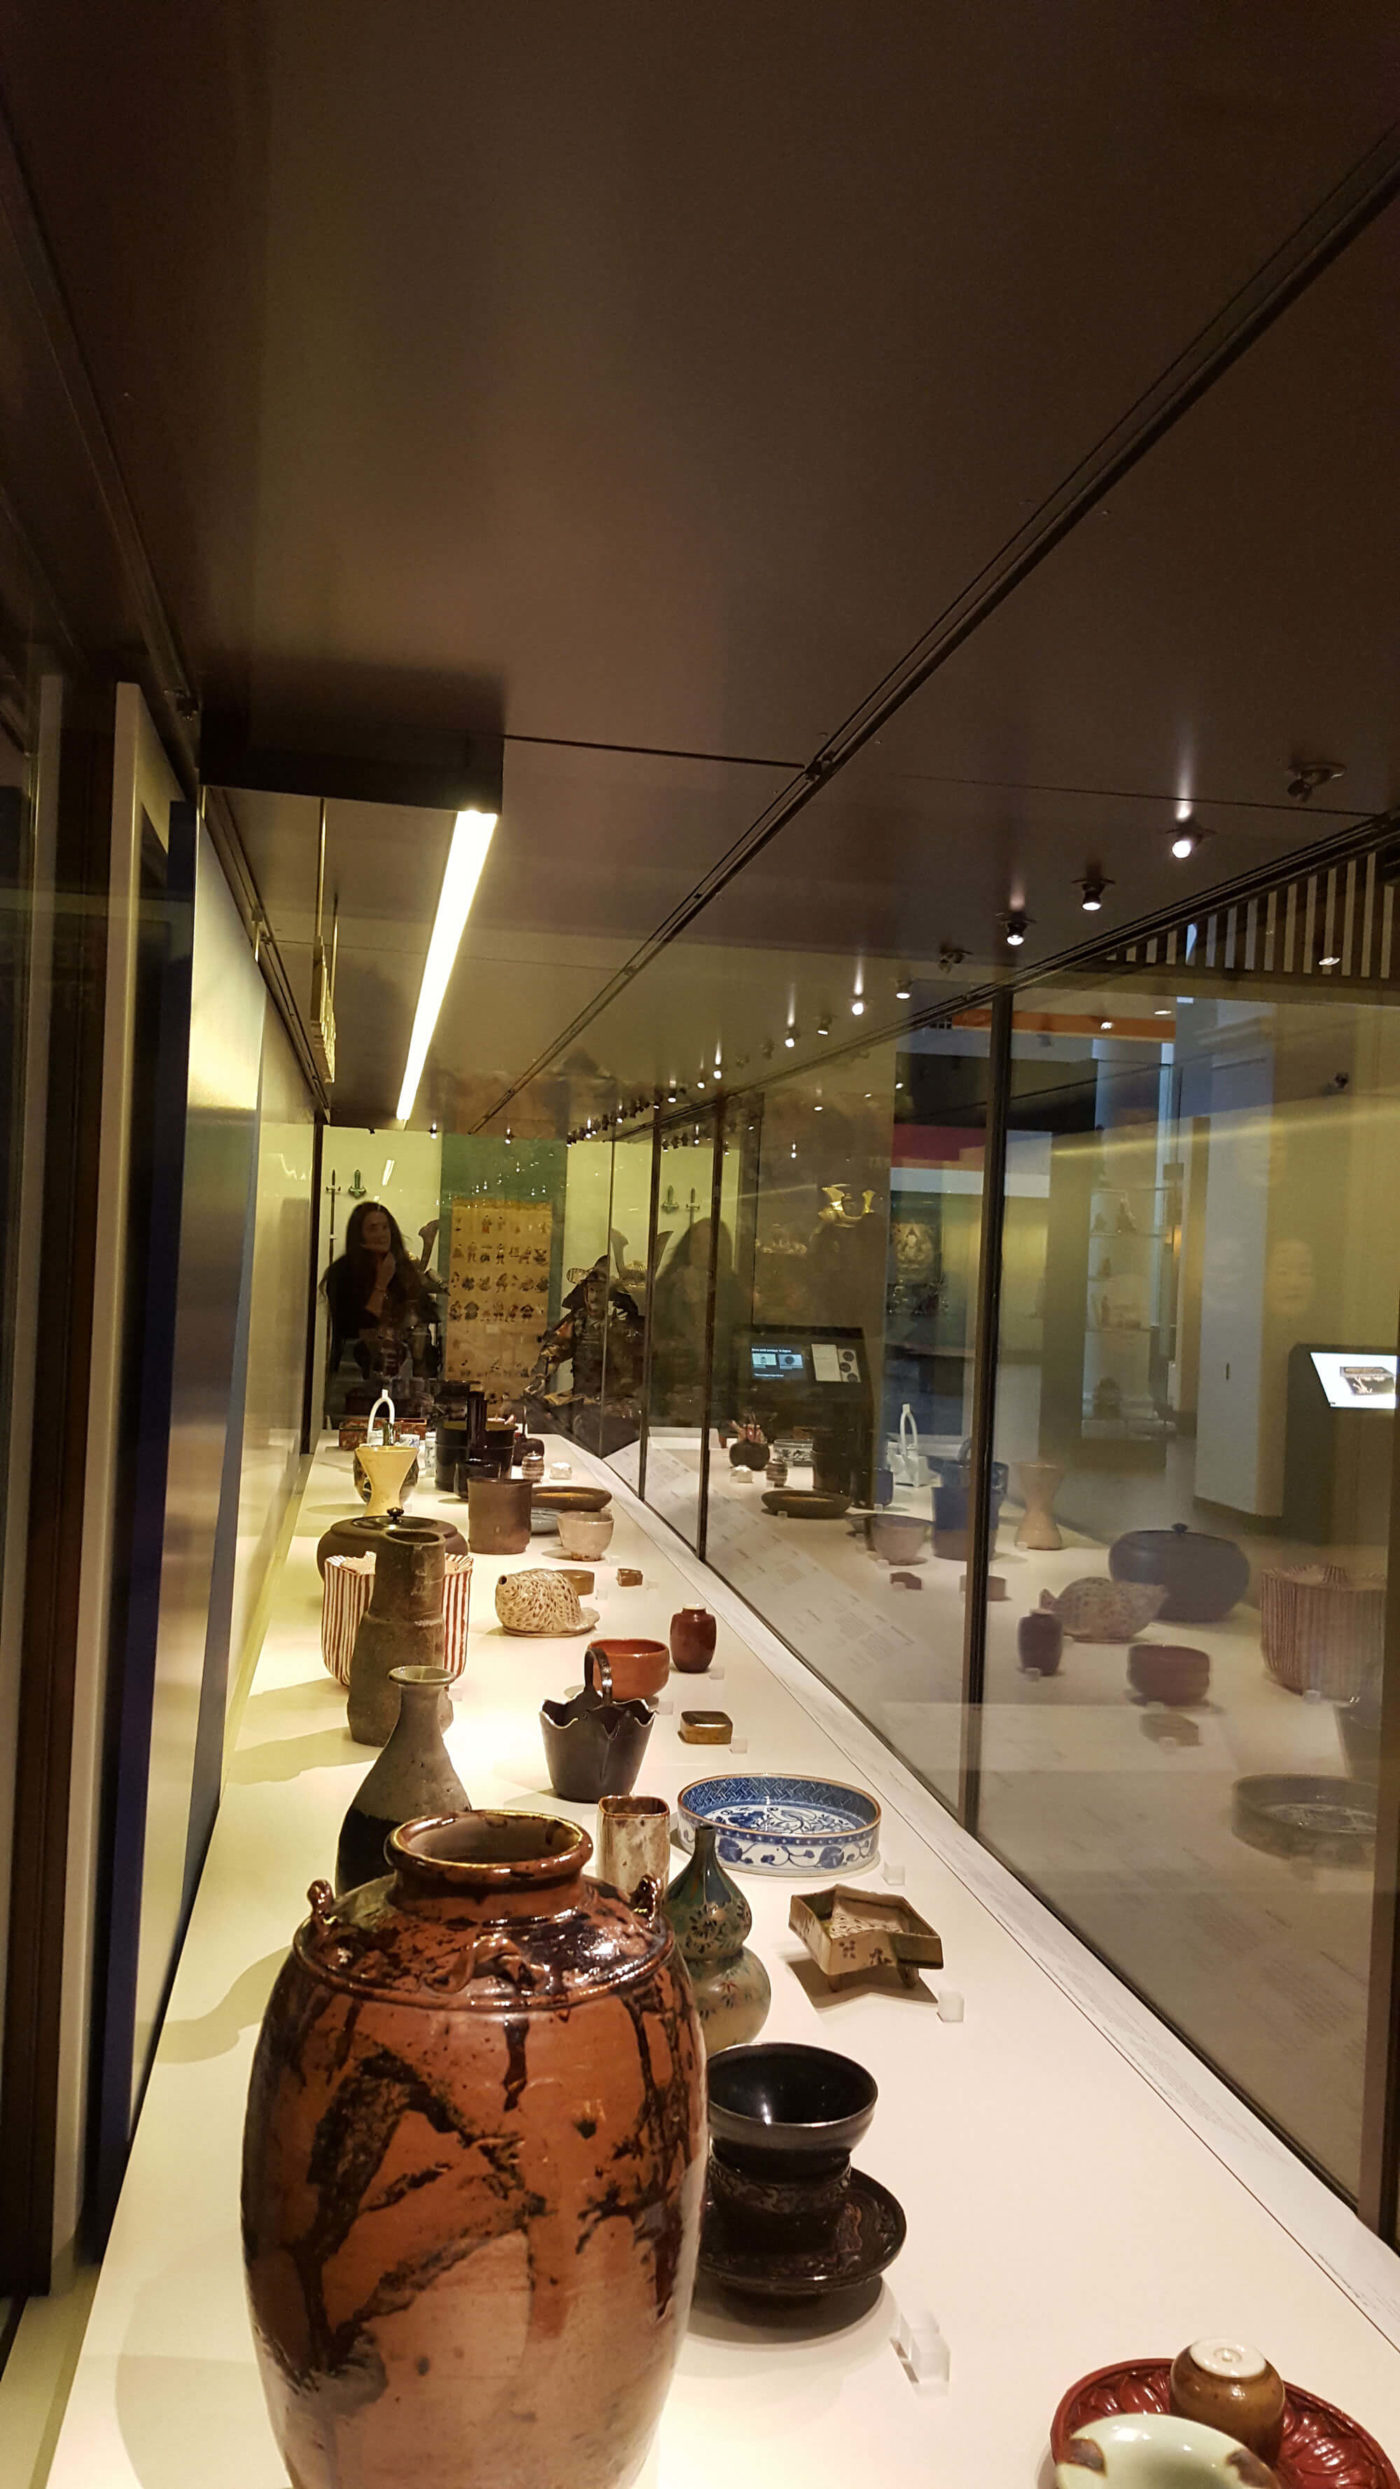 retail-shop-national-history-museum-london-3-mjlighting